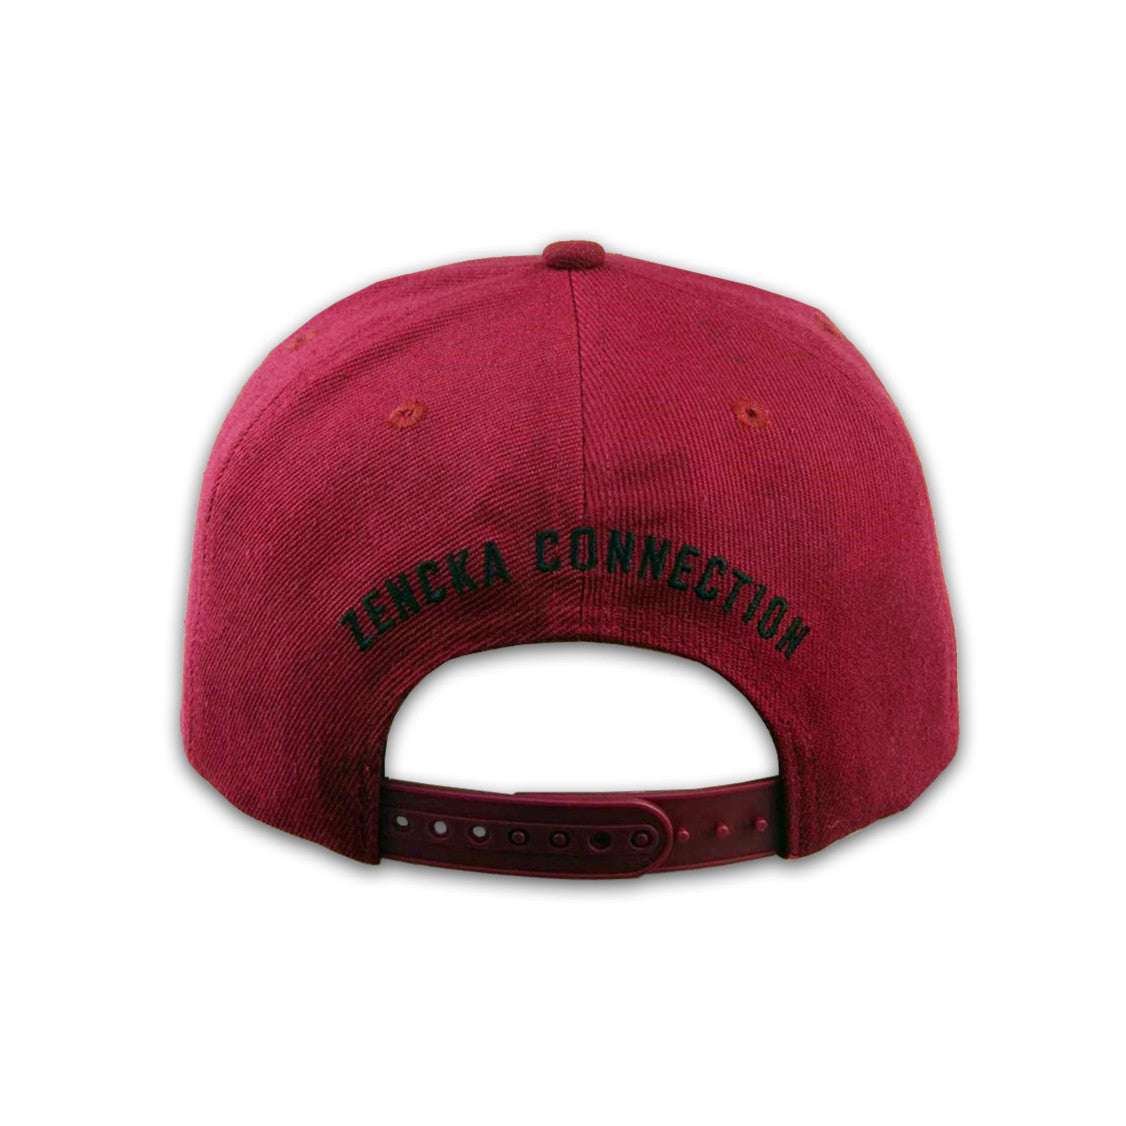 ZENCKA CONNECTION (BURGUNDY RED) - ZENCKA CONNECTION